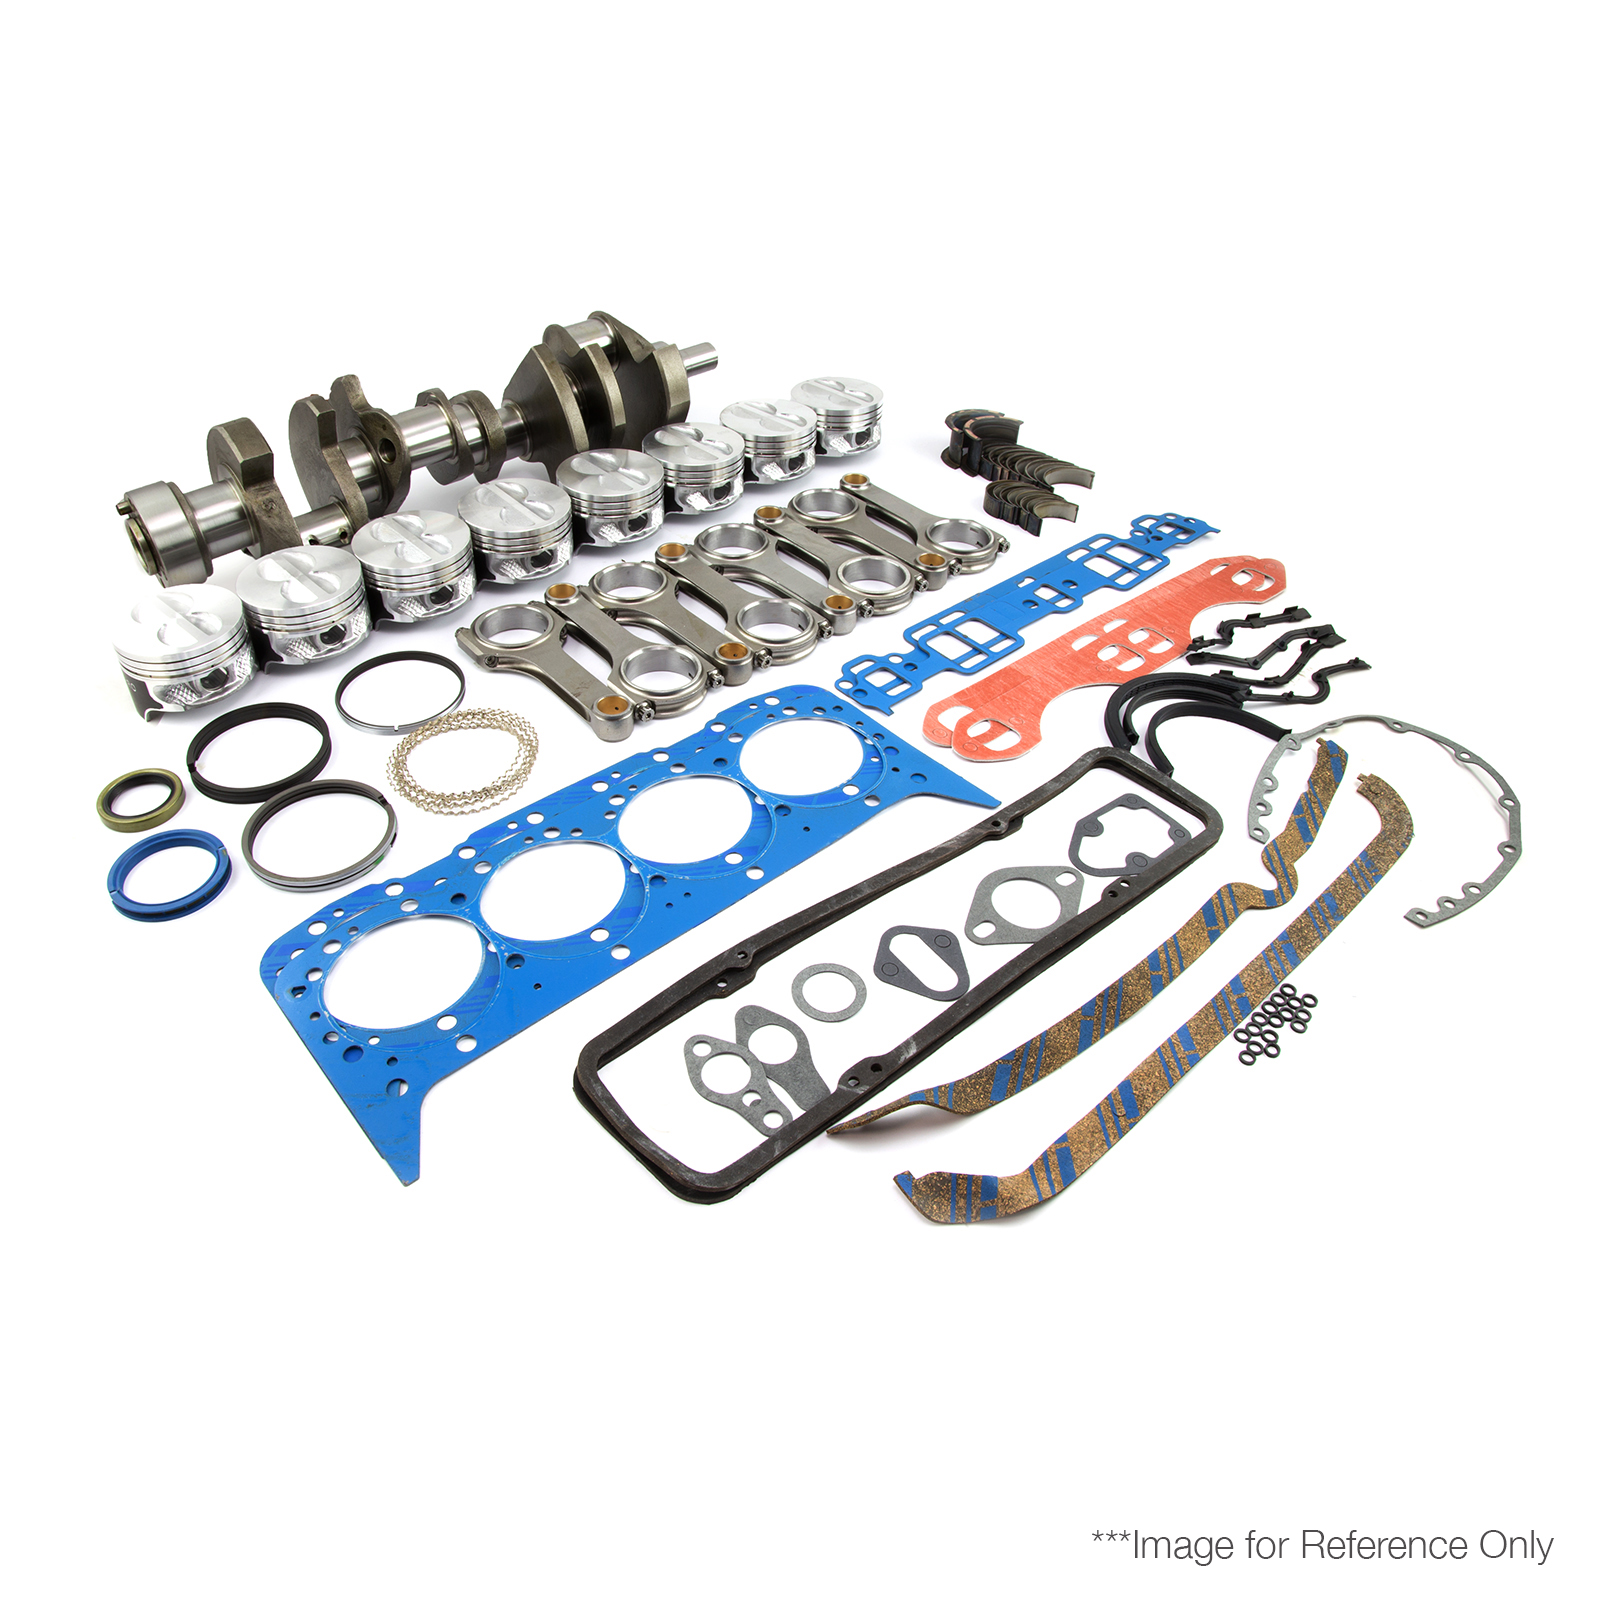 "Chevy BBC 454 4.250"" 496ci 2Pc Rotating Assembly Kit (F,H,F +30)"